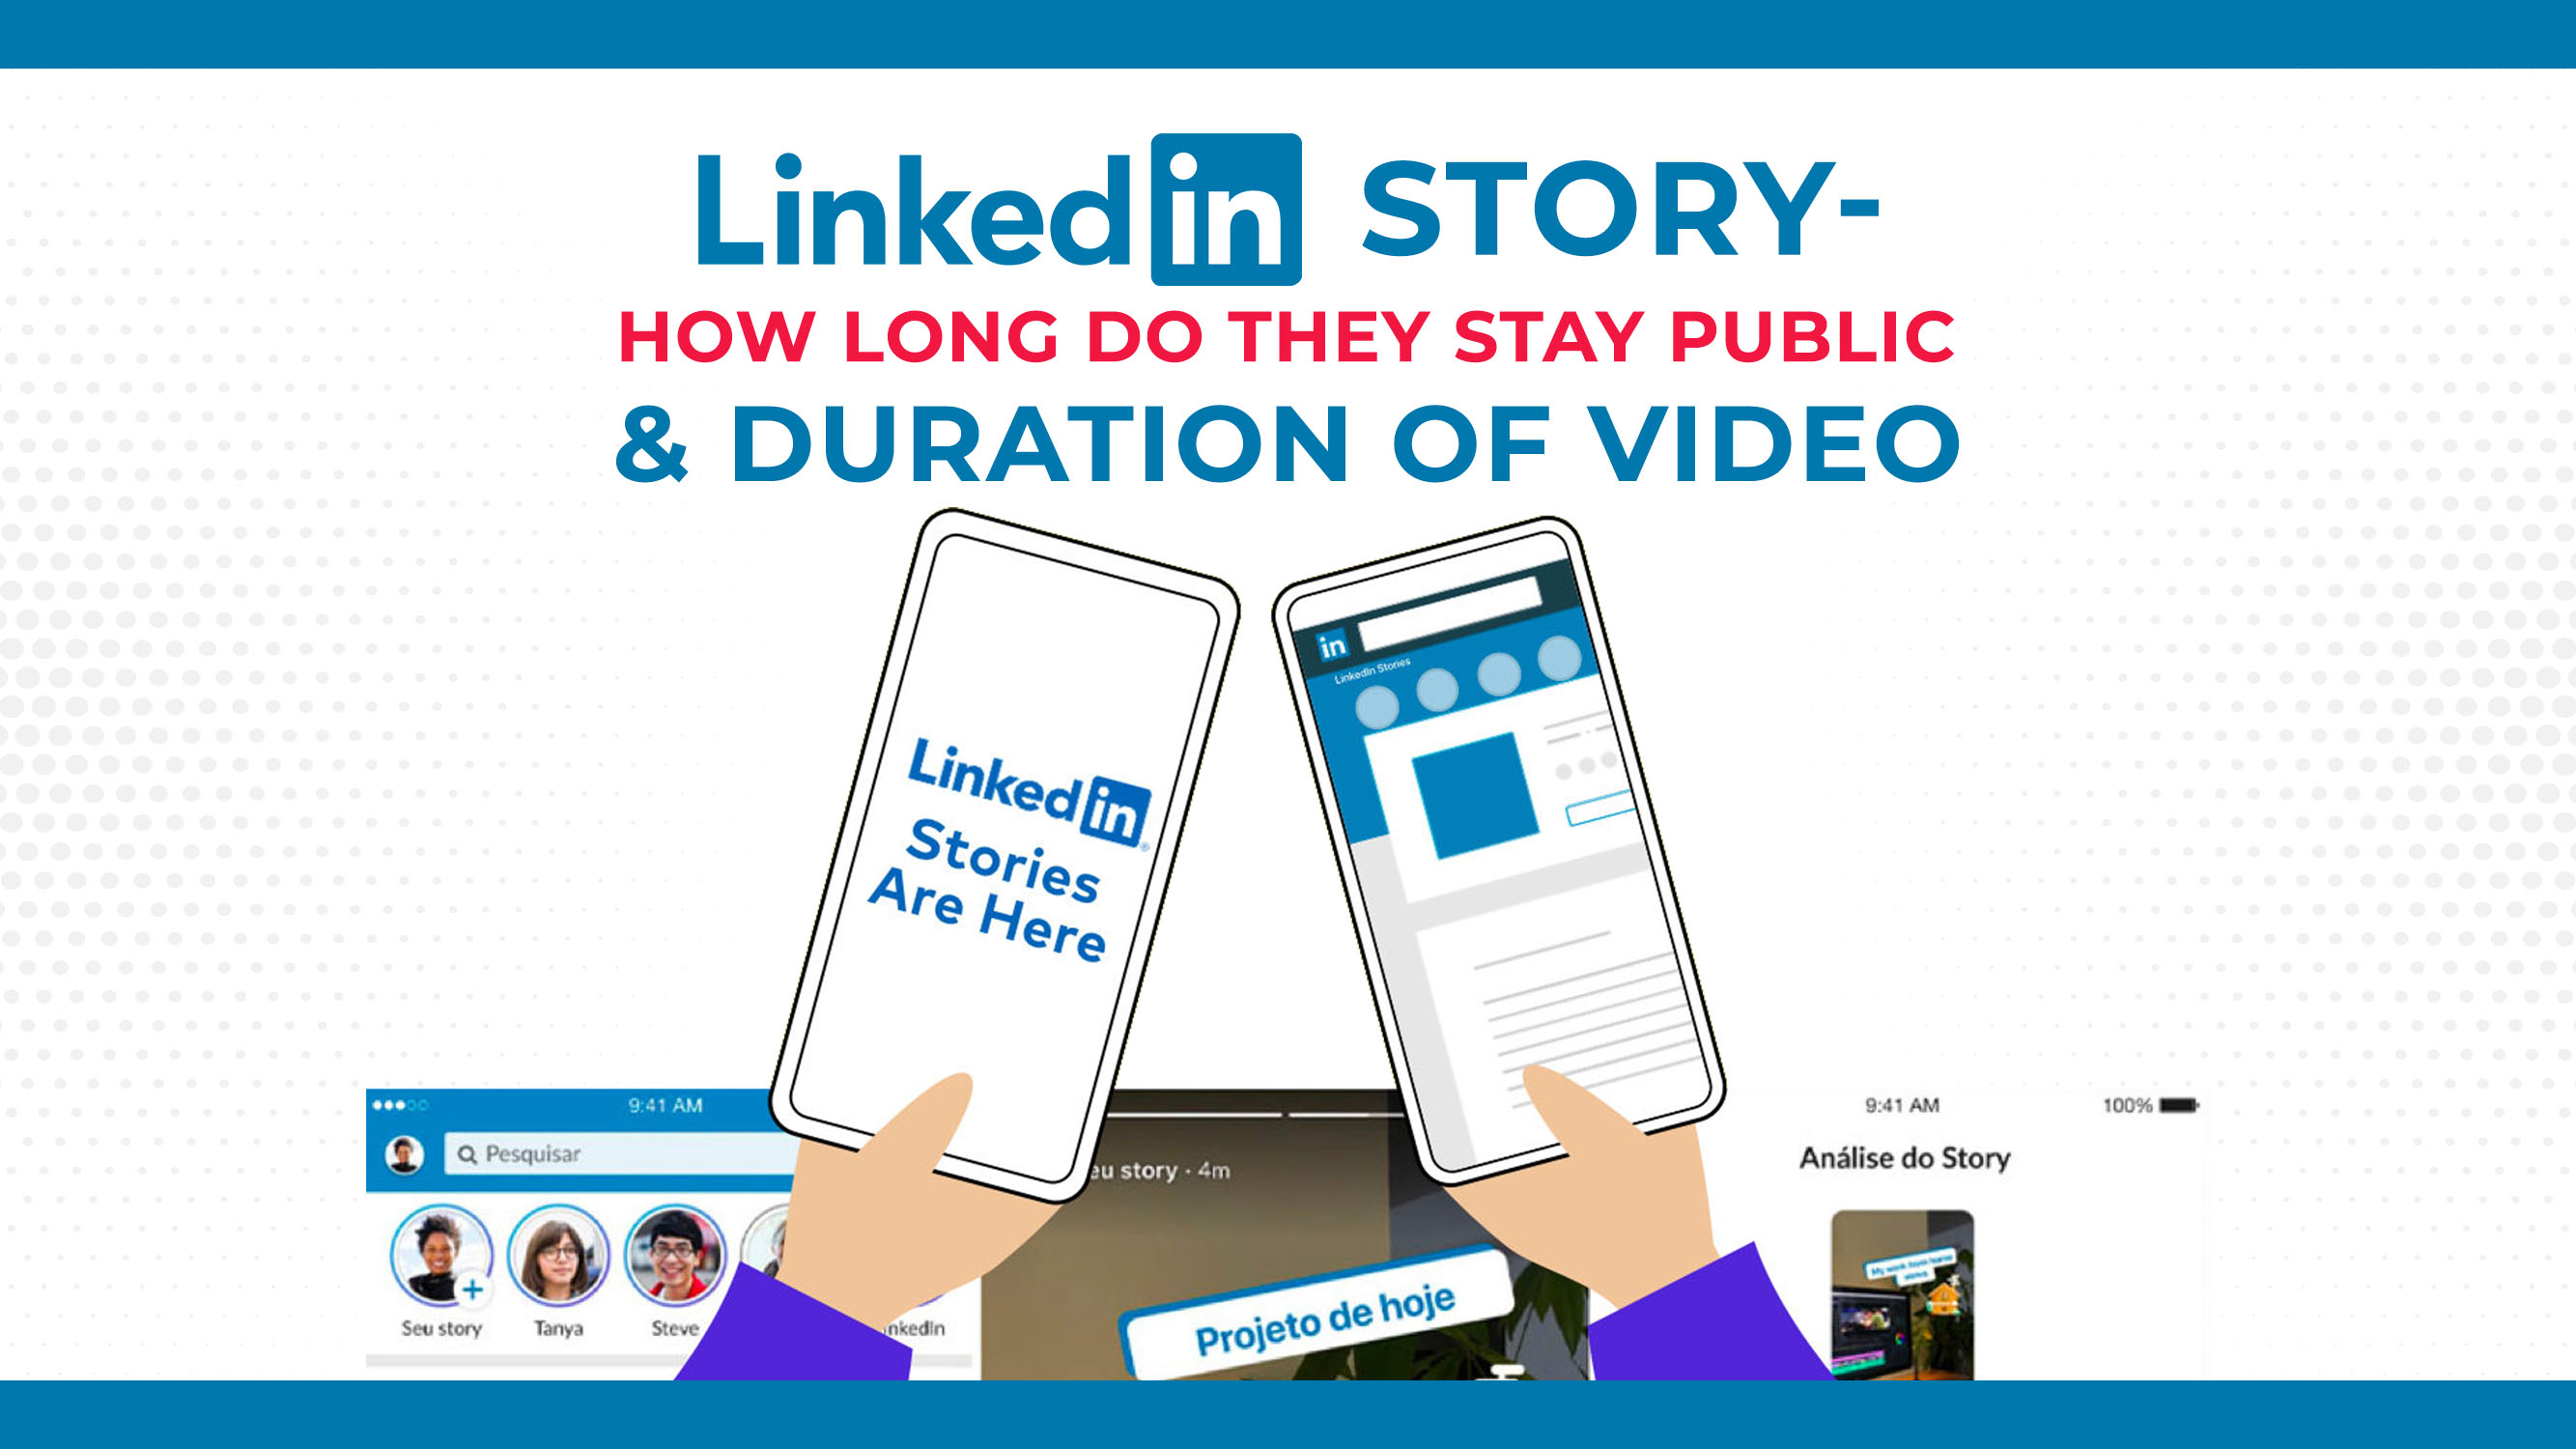 LinkedIn Stories: How Long Do They Stay Public?